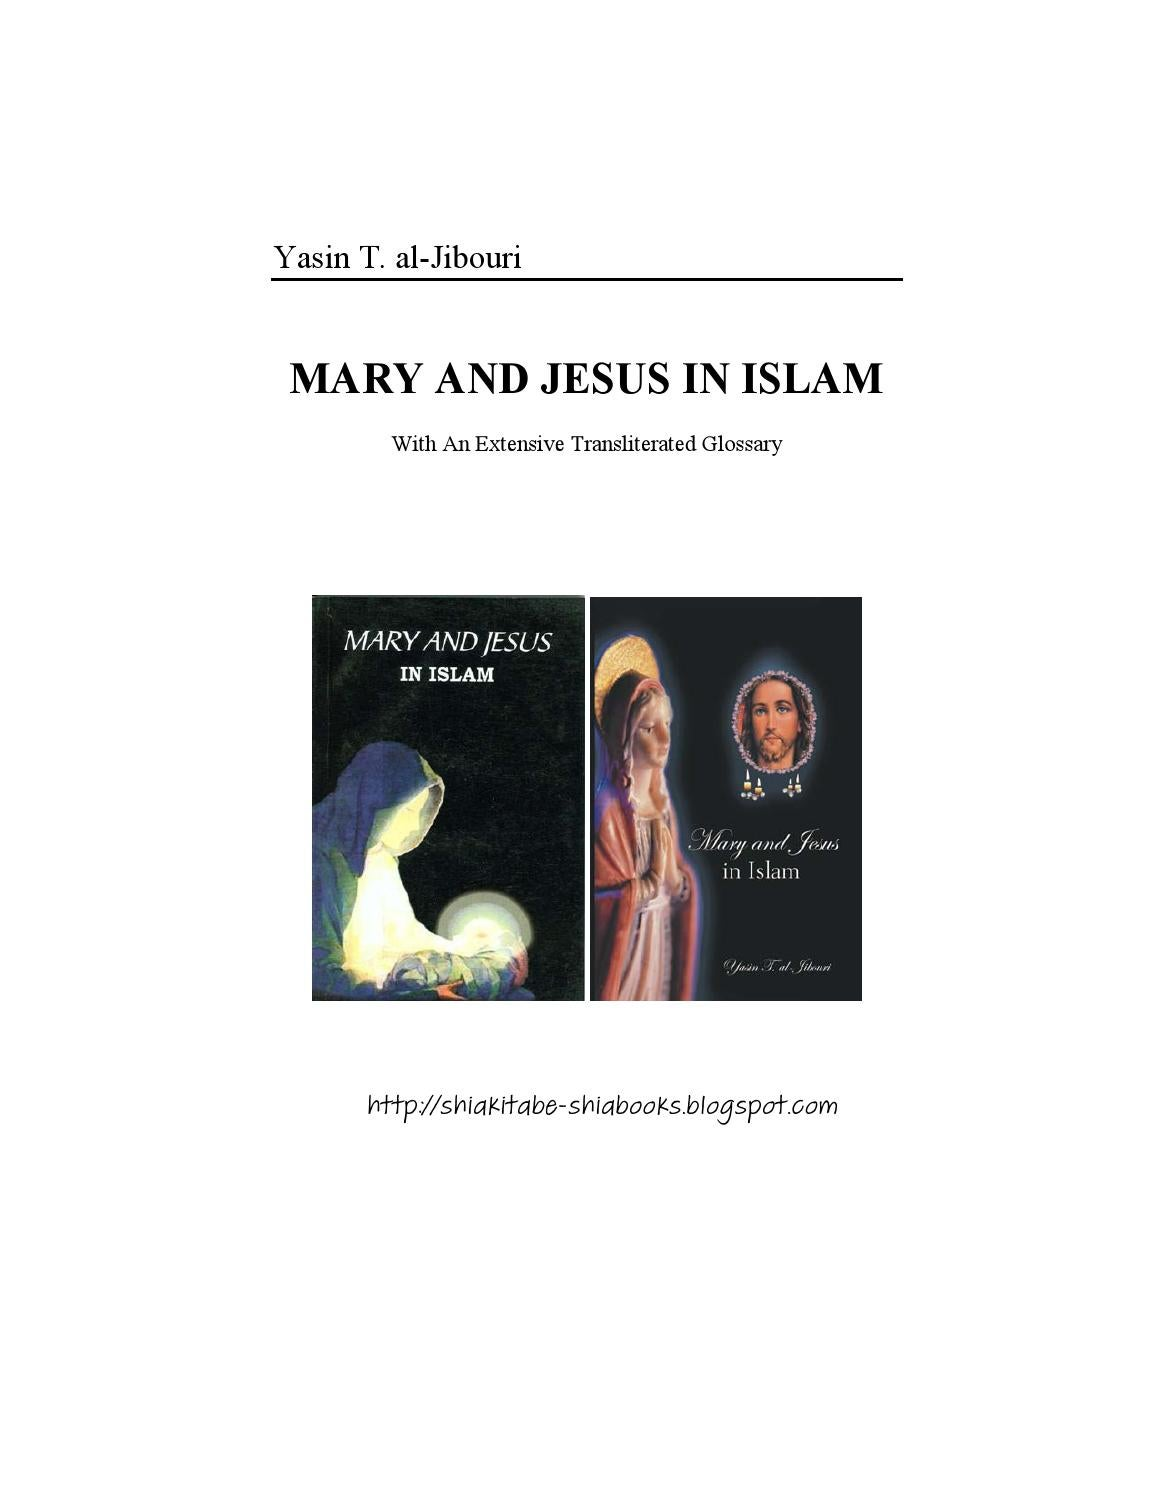 17c188bb0 Mary and Jesus in Islam Yasin T Al Jibouri by Syed Naqvi - issuu